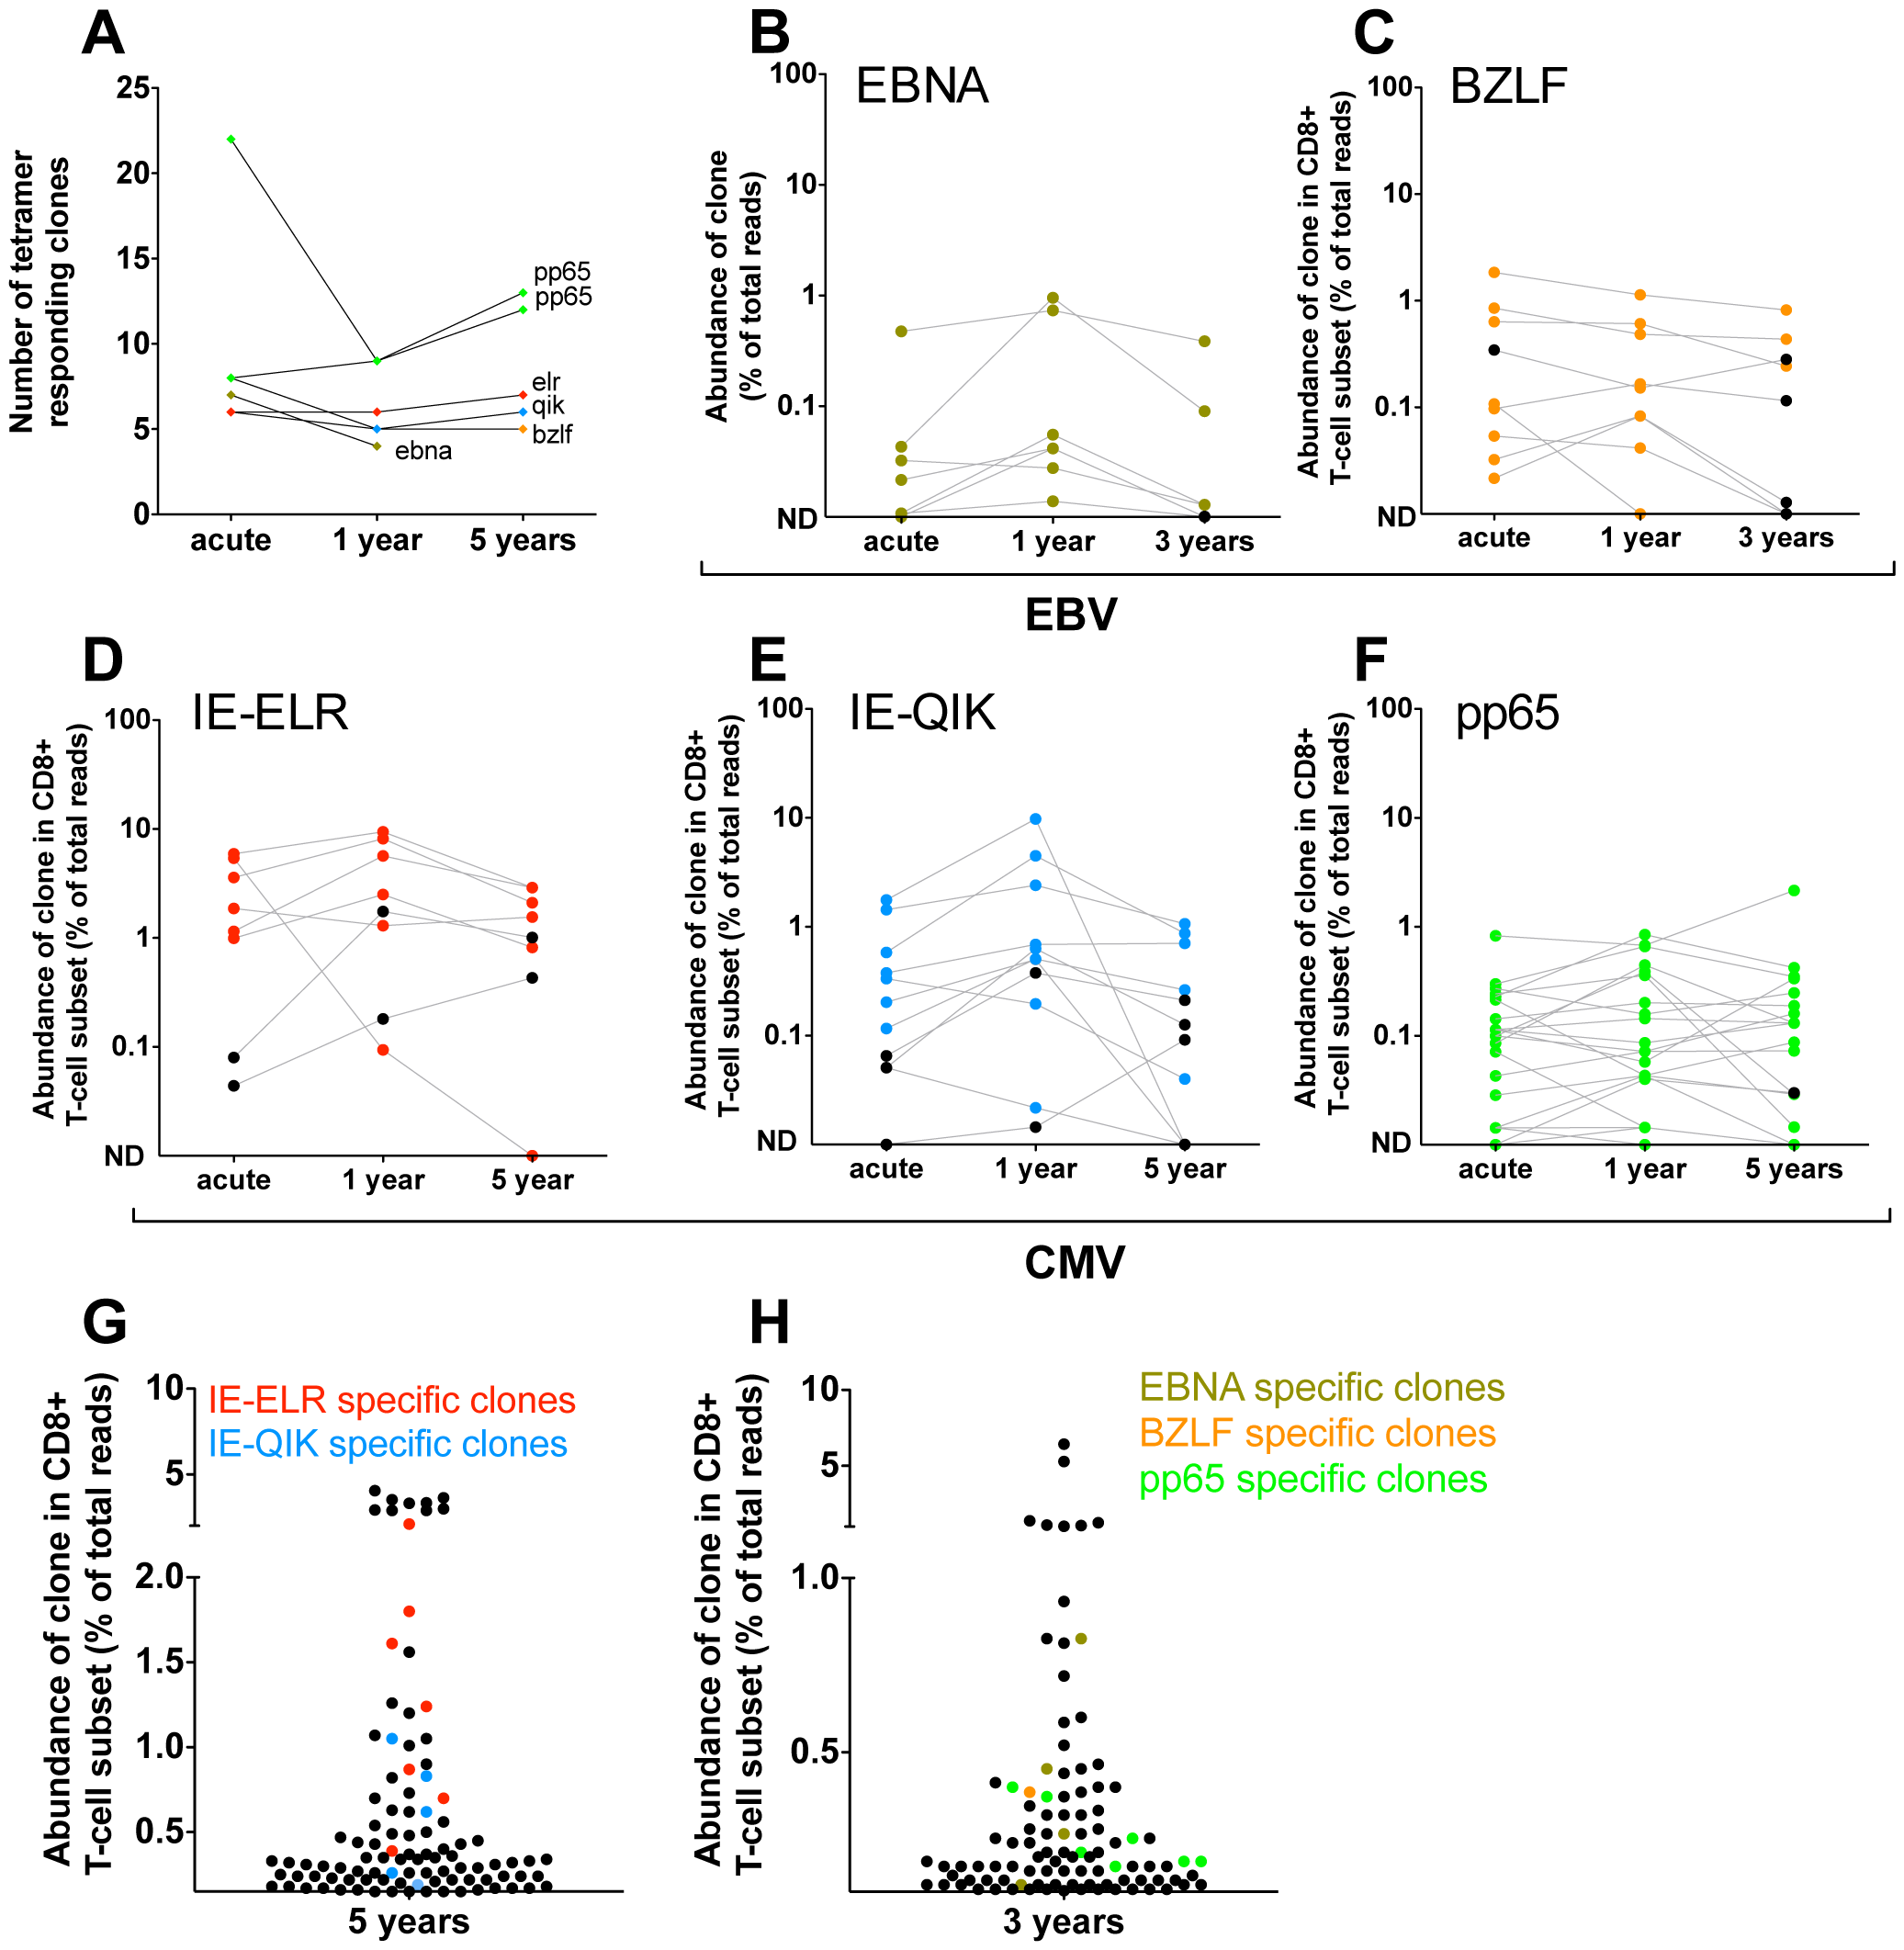 Quantification of clonal response in latent phase of response against hCMV and EBV.